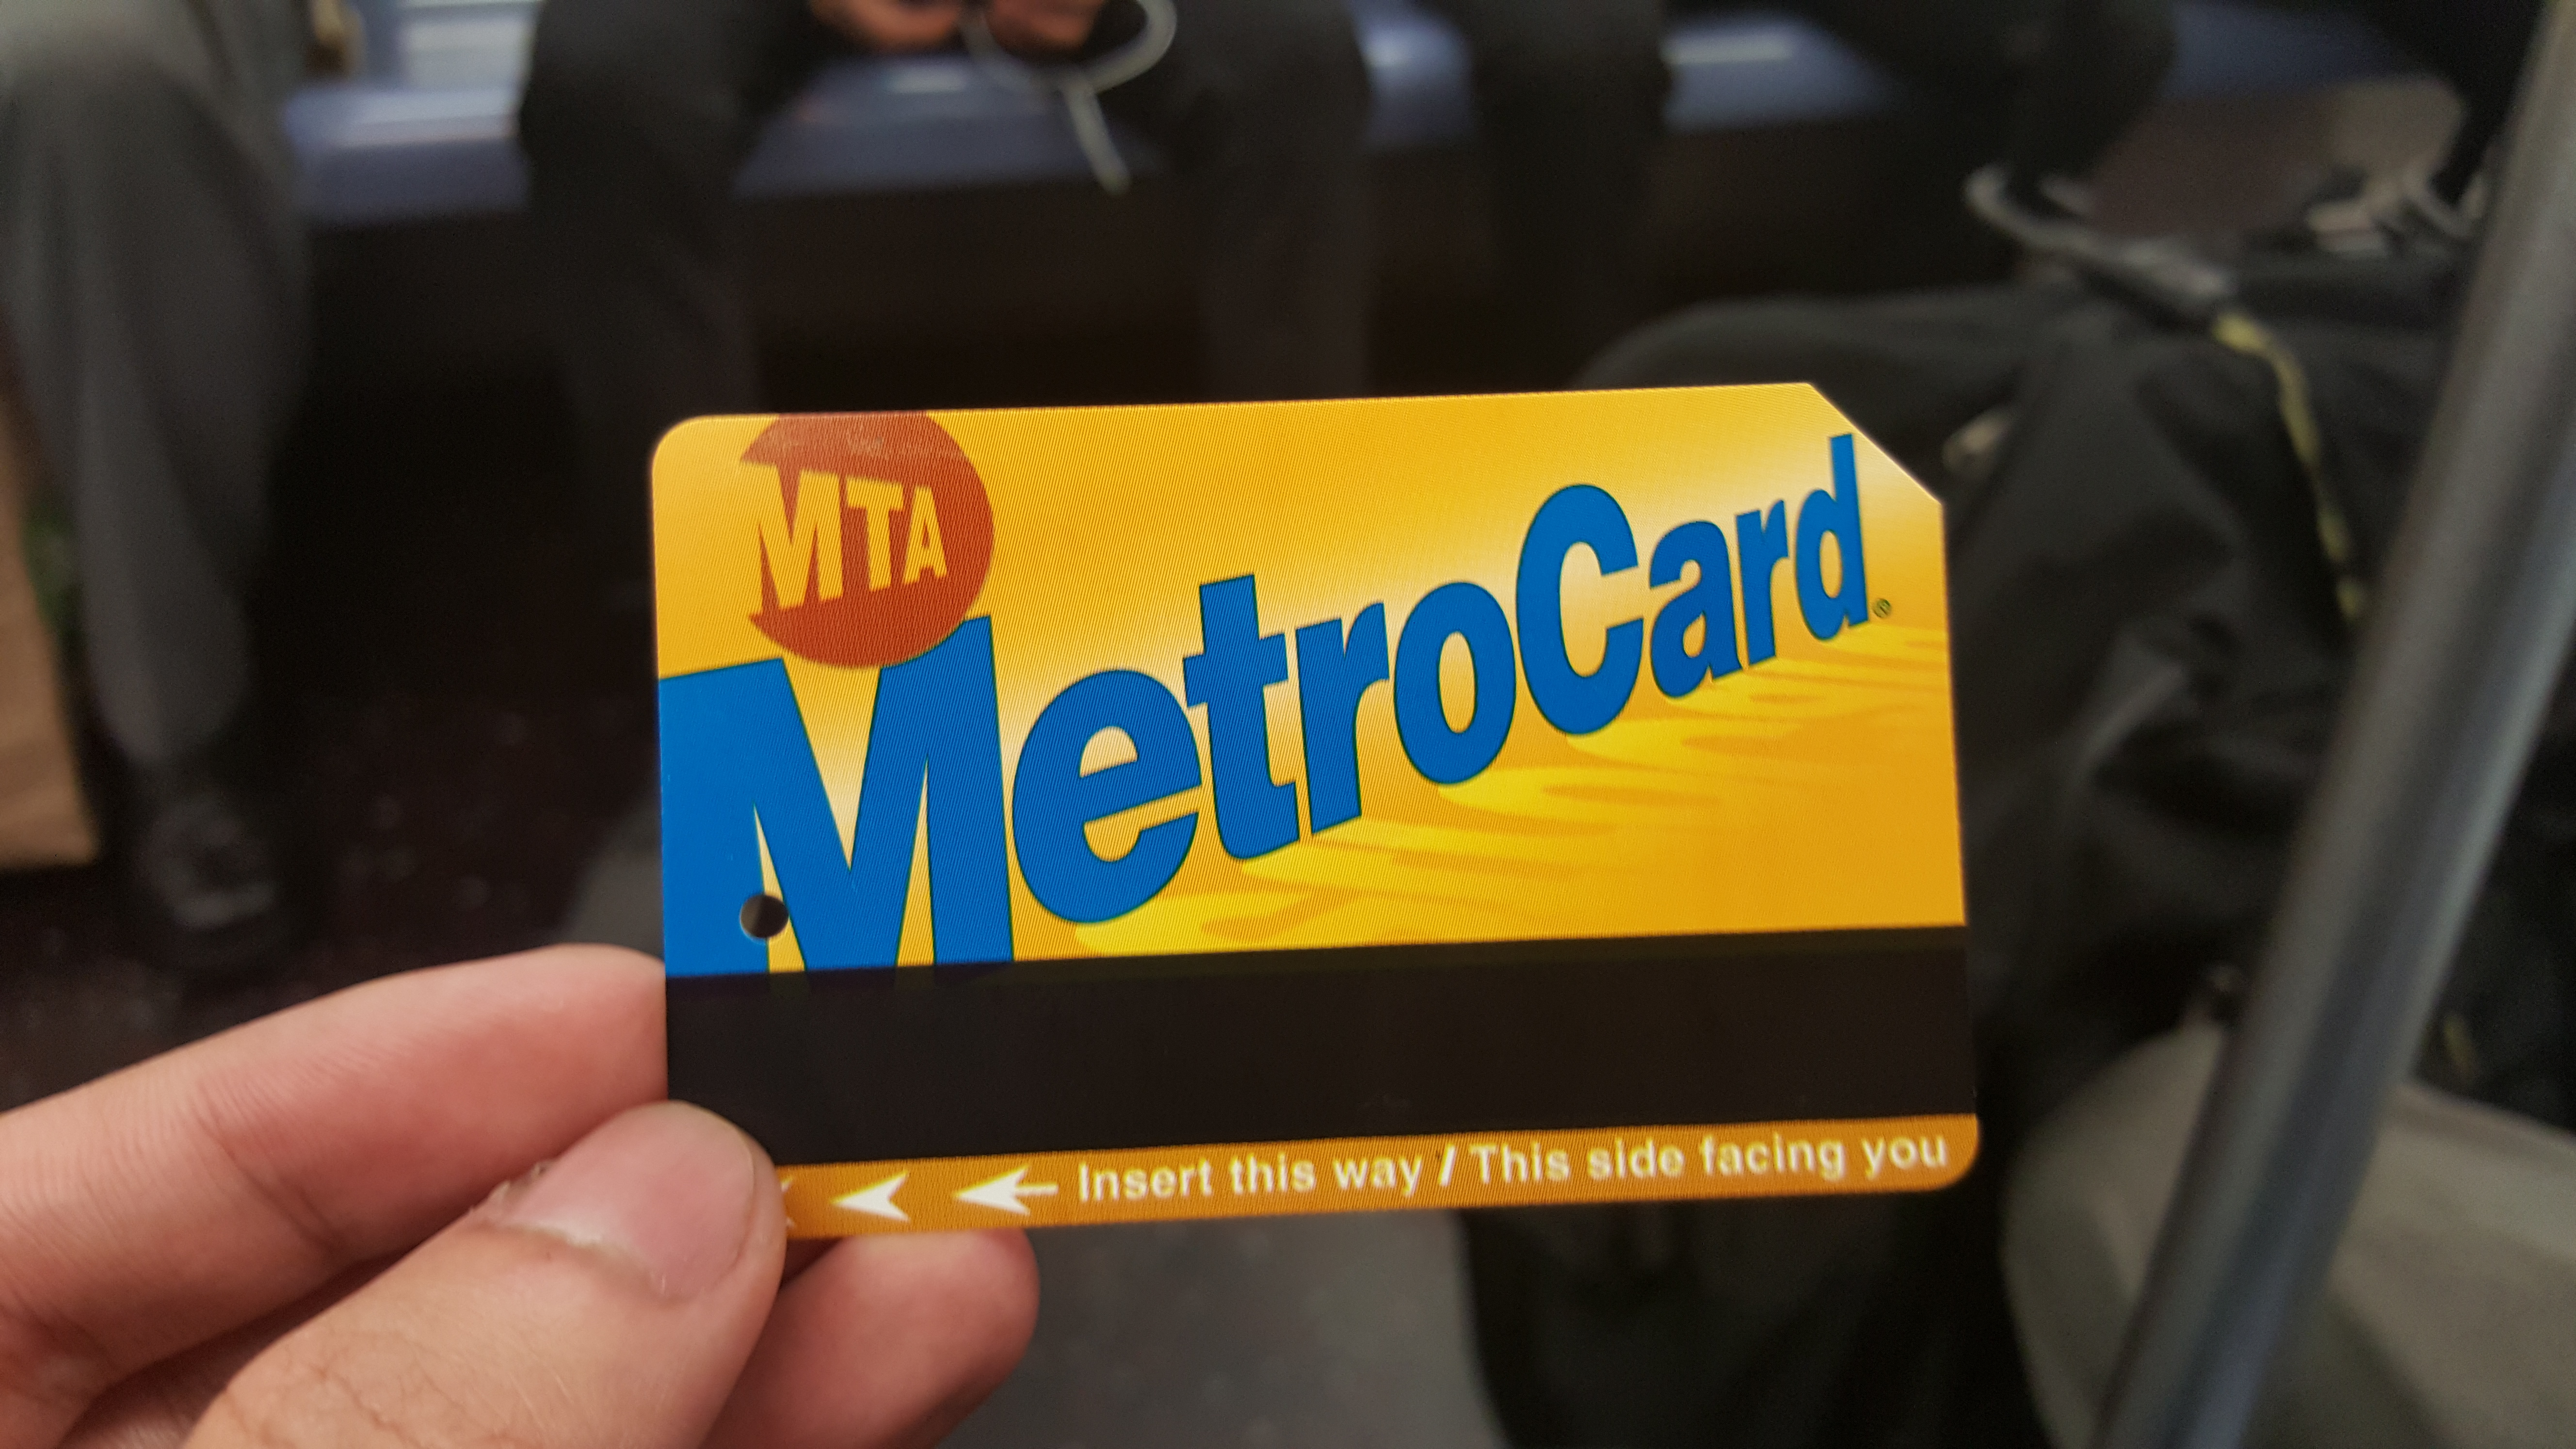 NYC students may get full-fare MetroCards under new MTA proposal